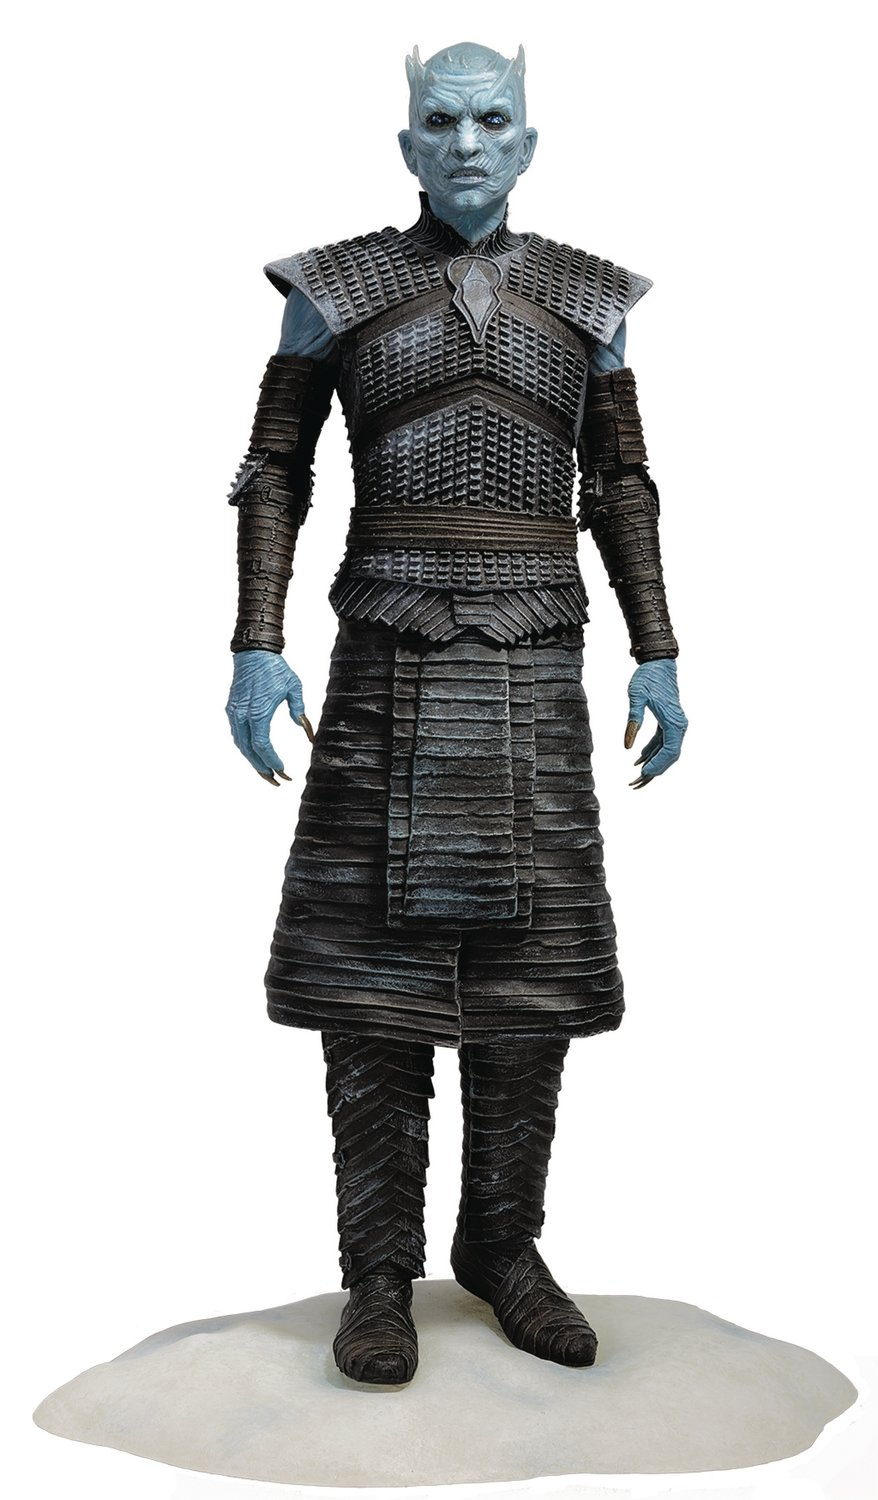 GAME OF THRONES FIGURE NIGHT KING